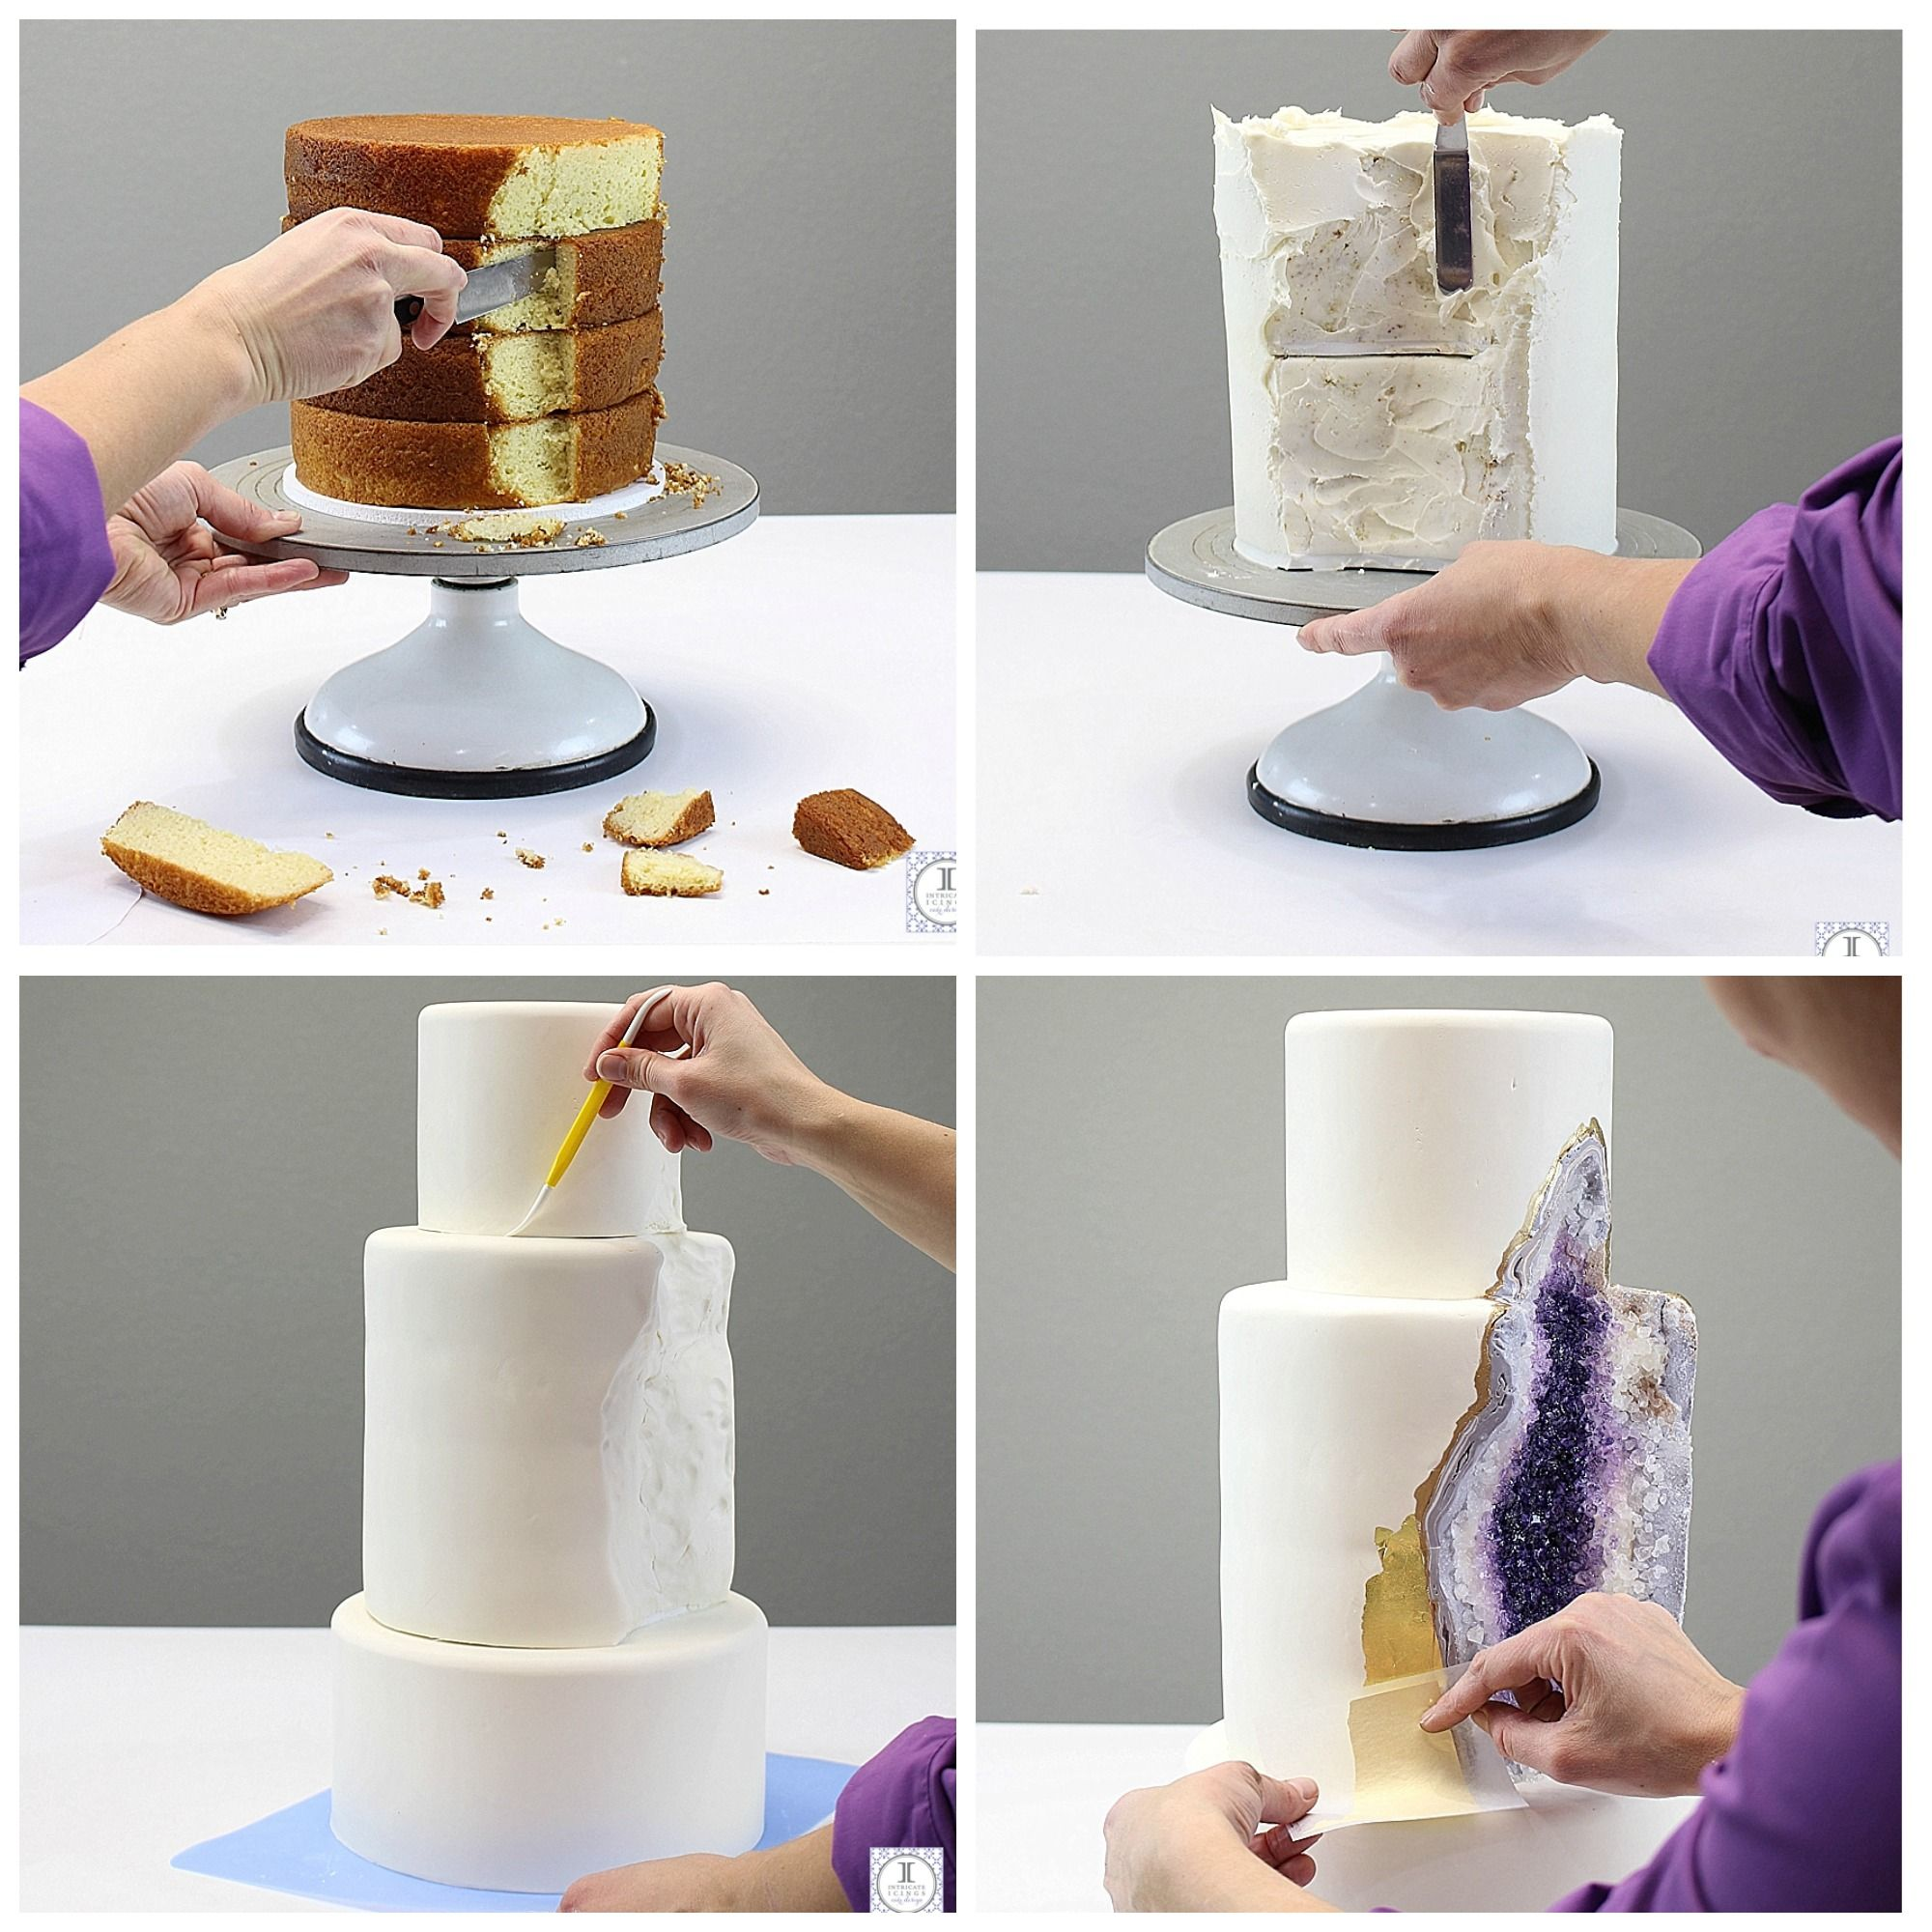 0ecd07d8cbaa95e5f47e85900b8388a8 how to make a geode cake geode cake and cake,How To Make Designer Cakes At Home